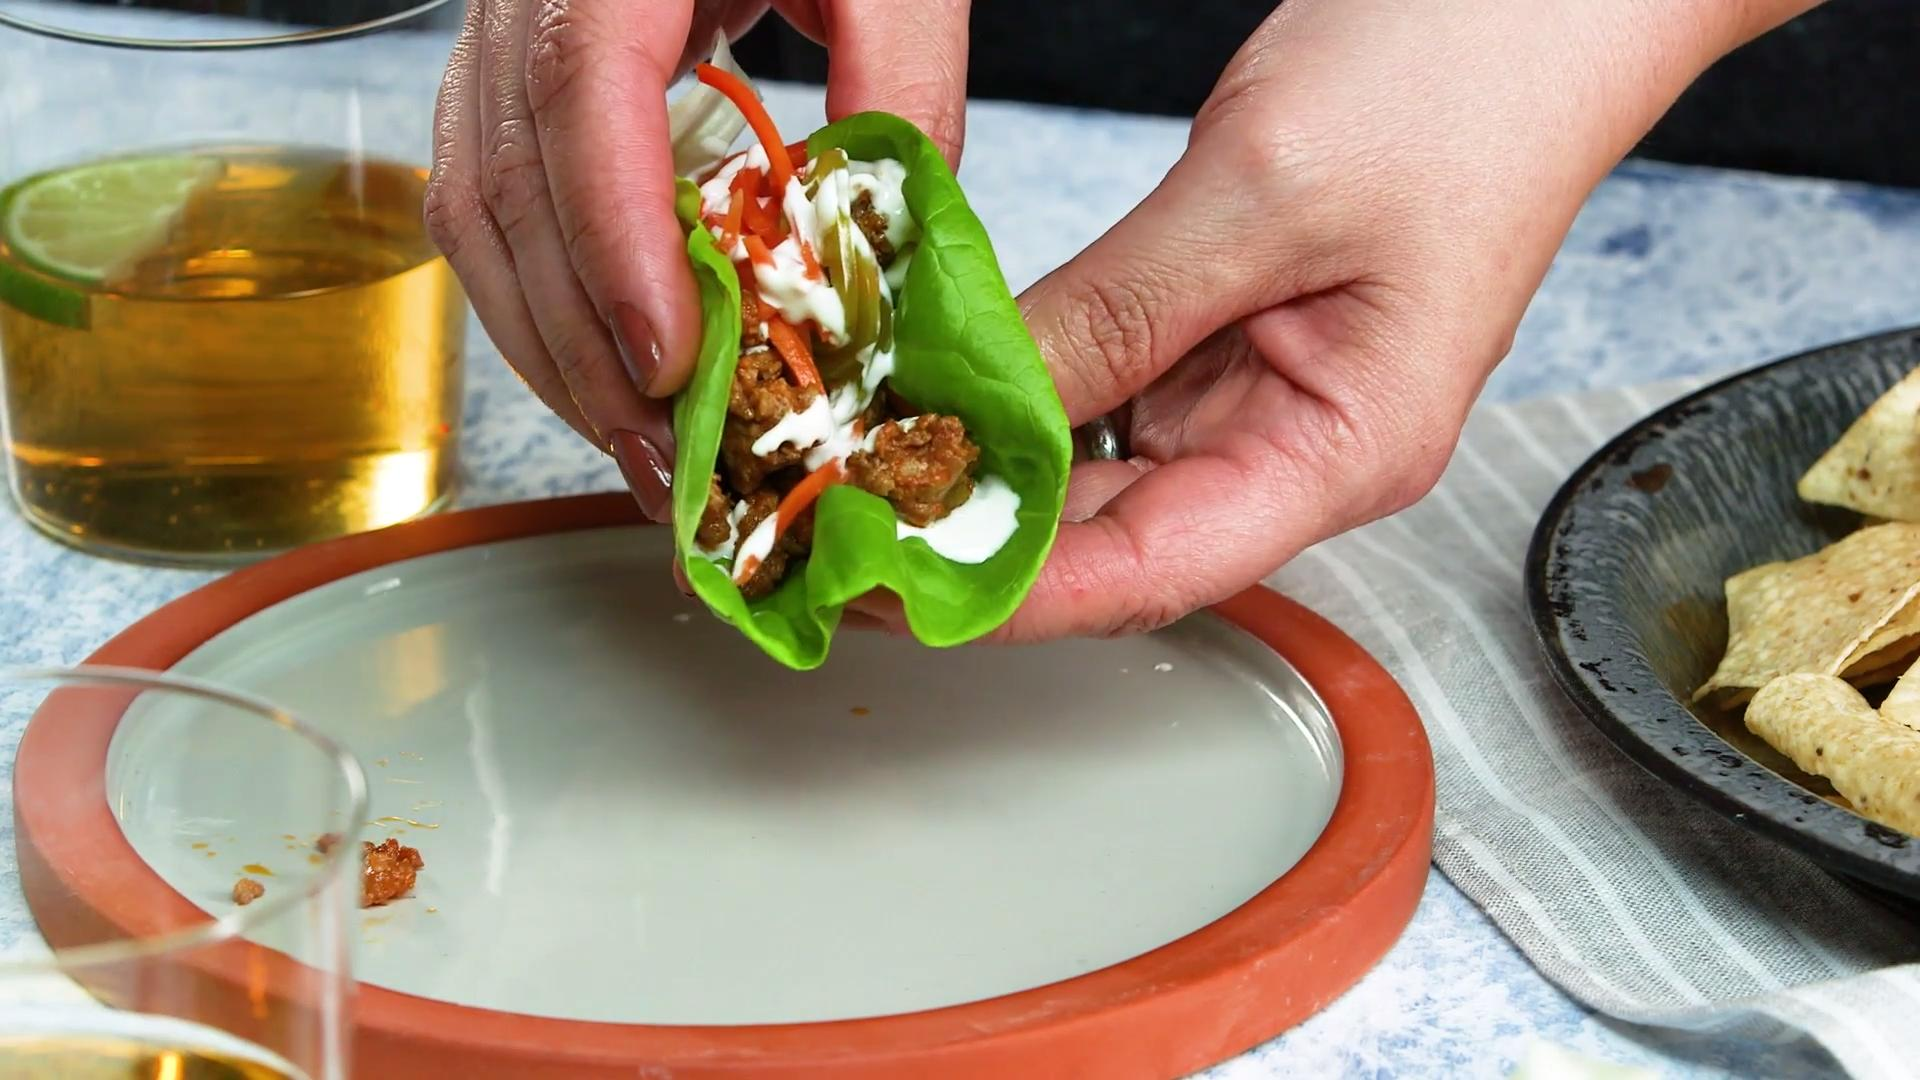 How to Make Taco Truck Lettuce Wraps